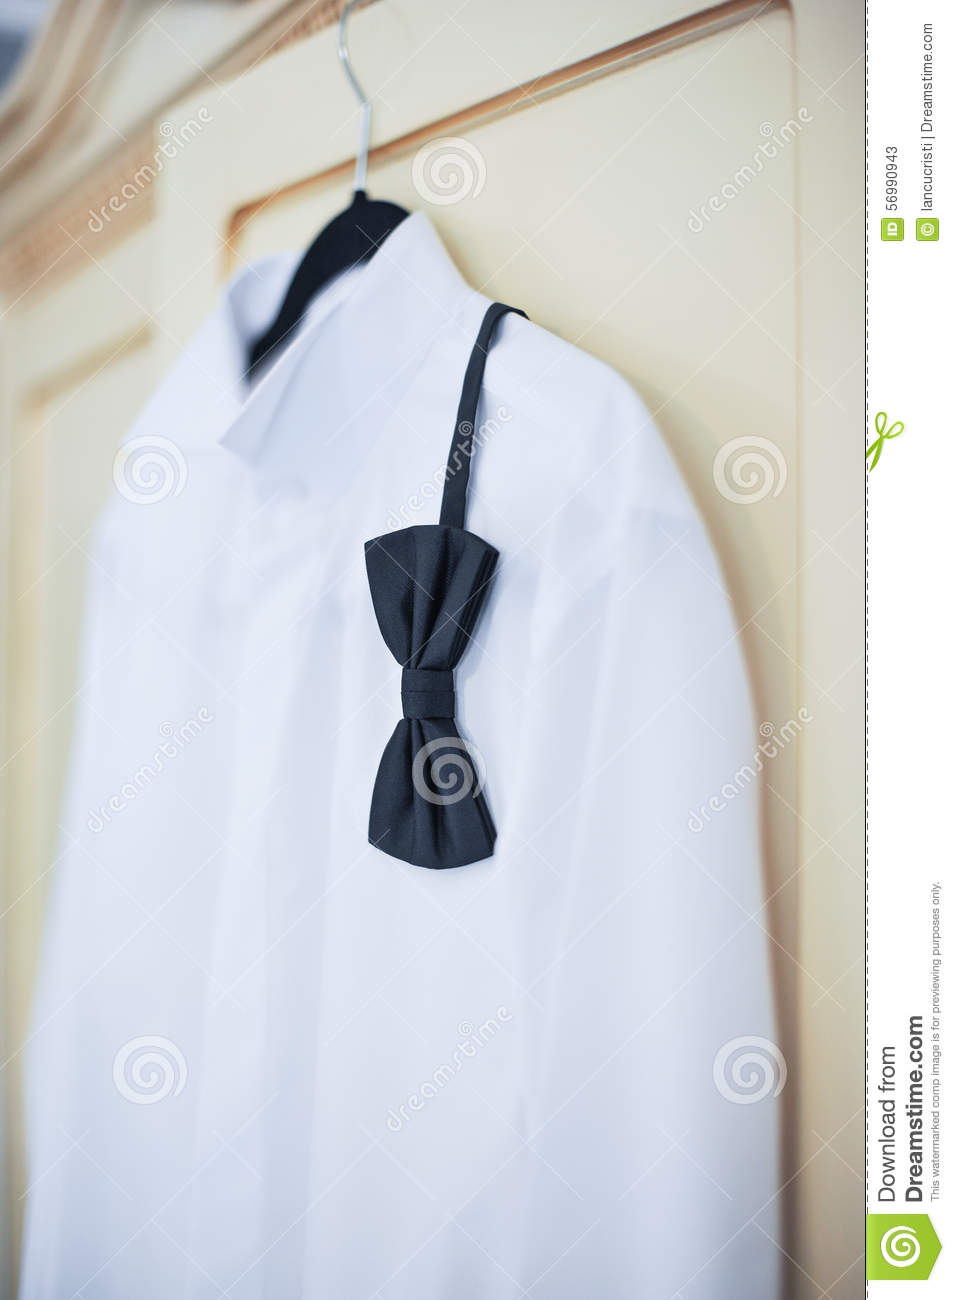 Wedding Bright White Shirt And Black Bow Formal Groom